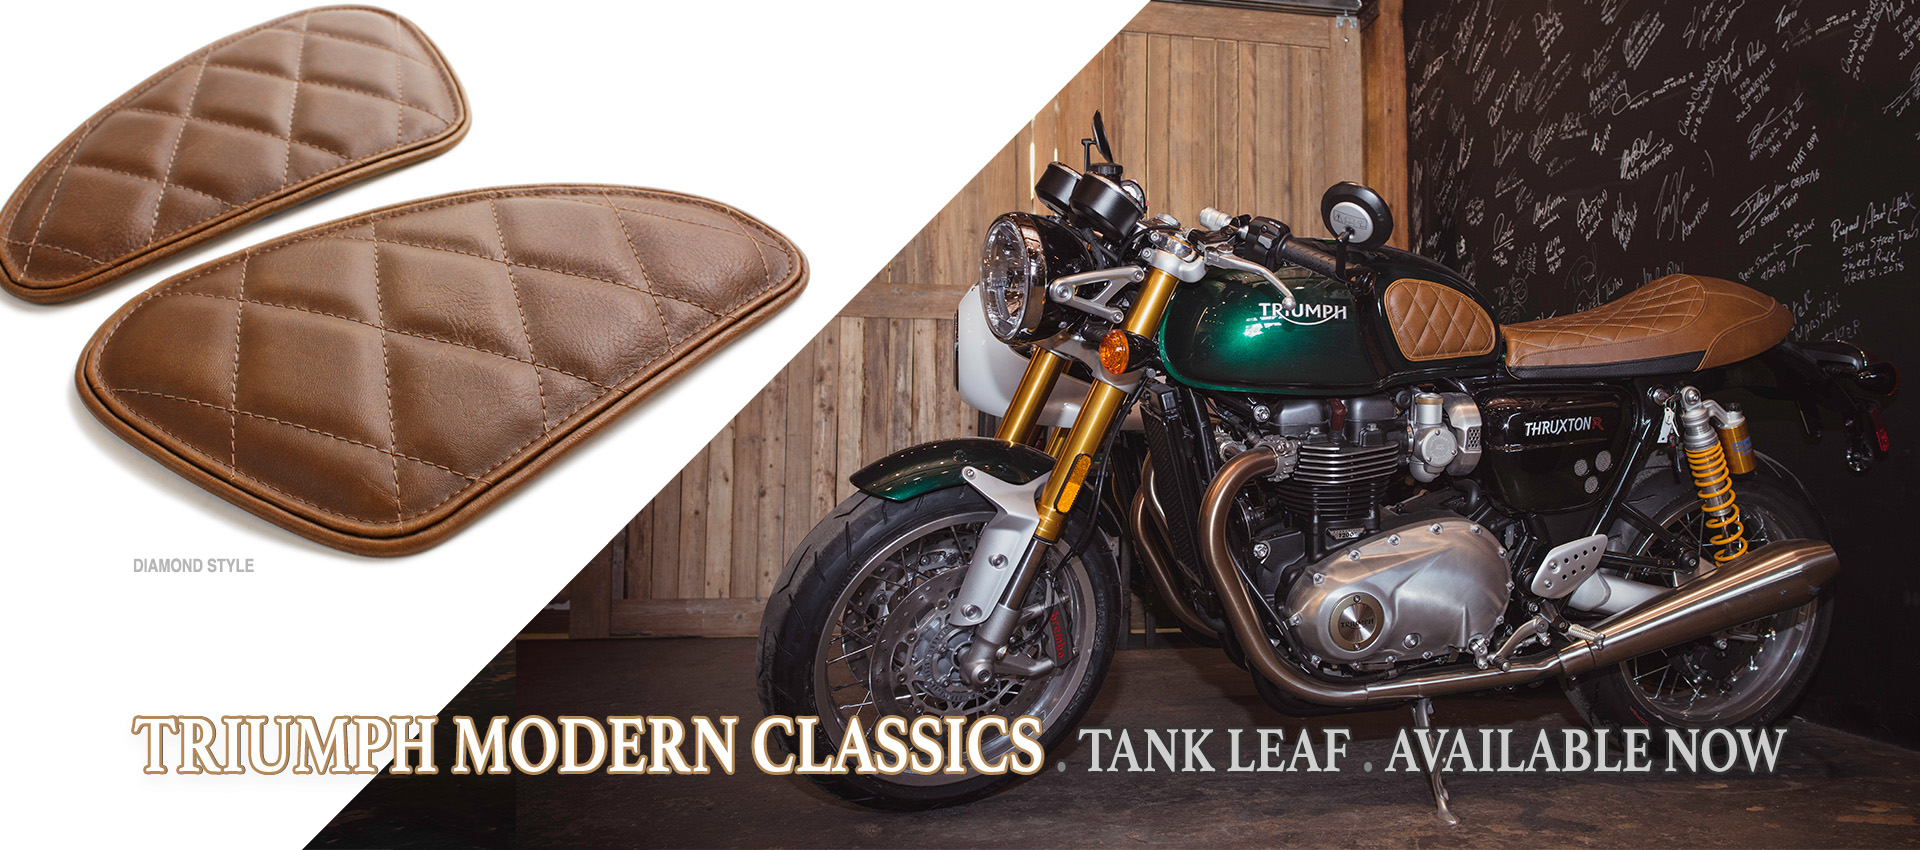 Luimoto Designer Motorcycle Seat Covers And More